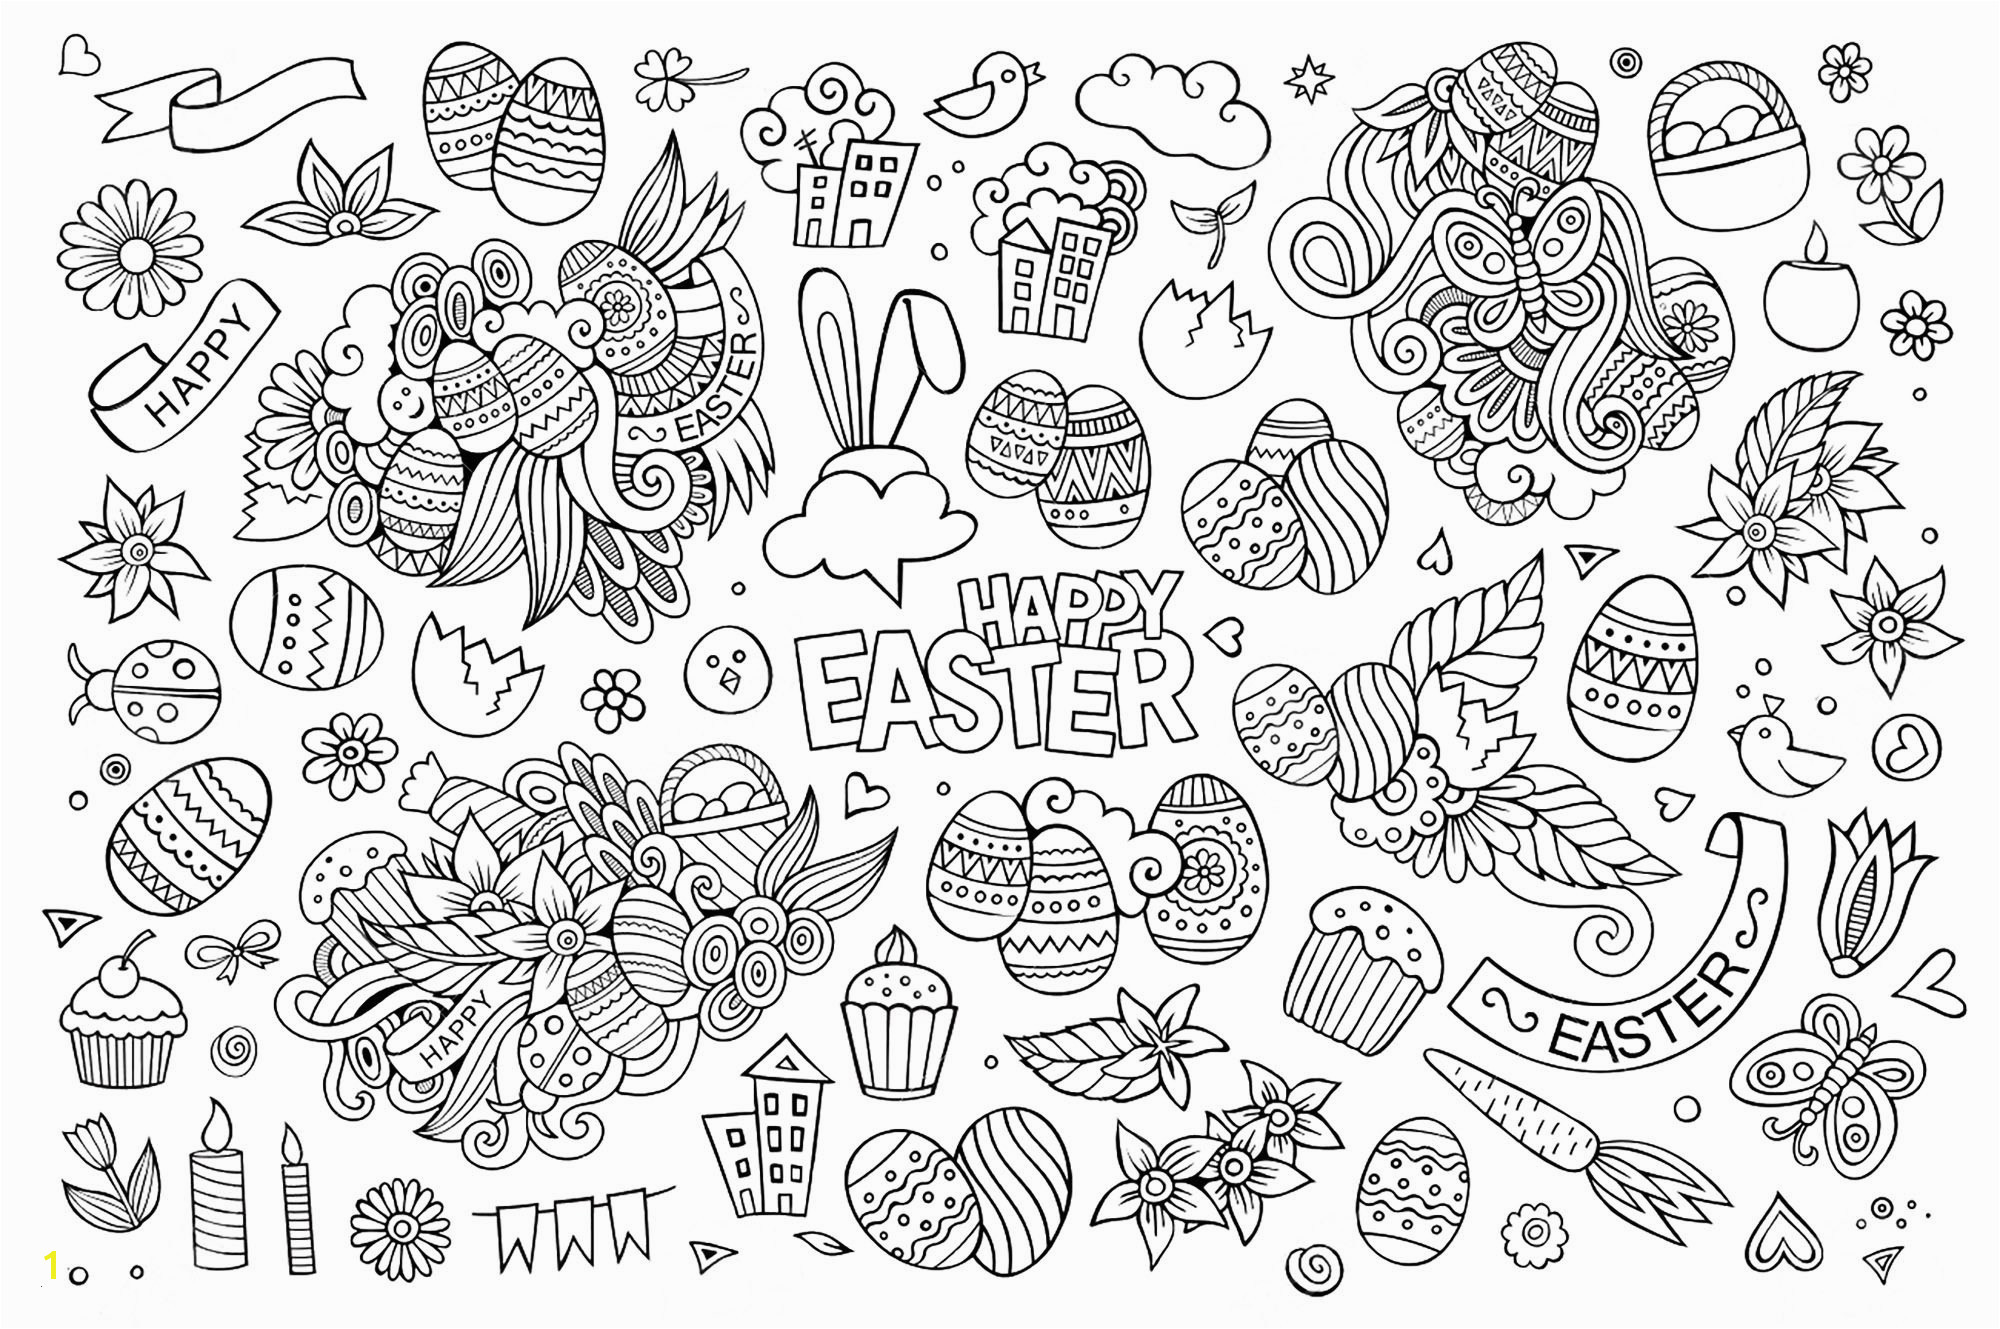 line Easter Coloring Pages Bugs Bunny Easter Coloring Pages New Ziemlich Tiny toons Coloring Genial